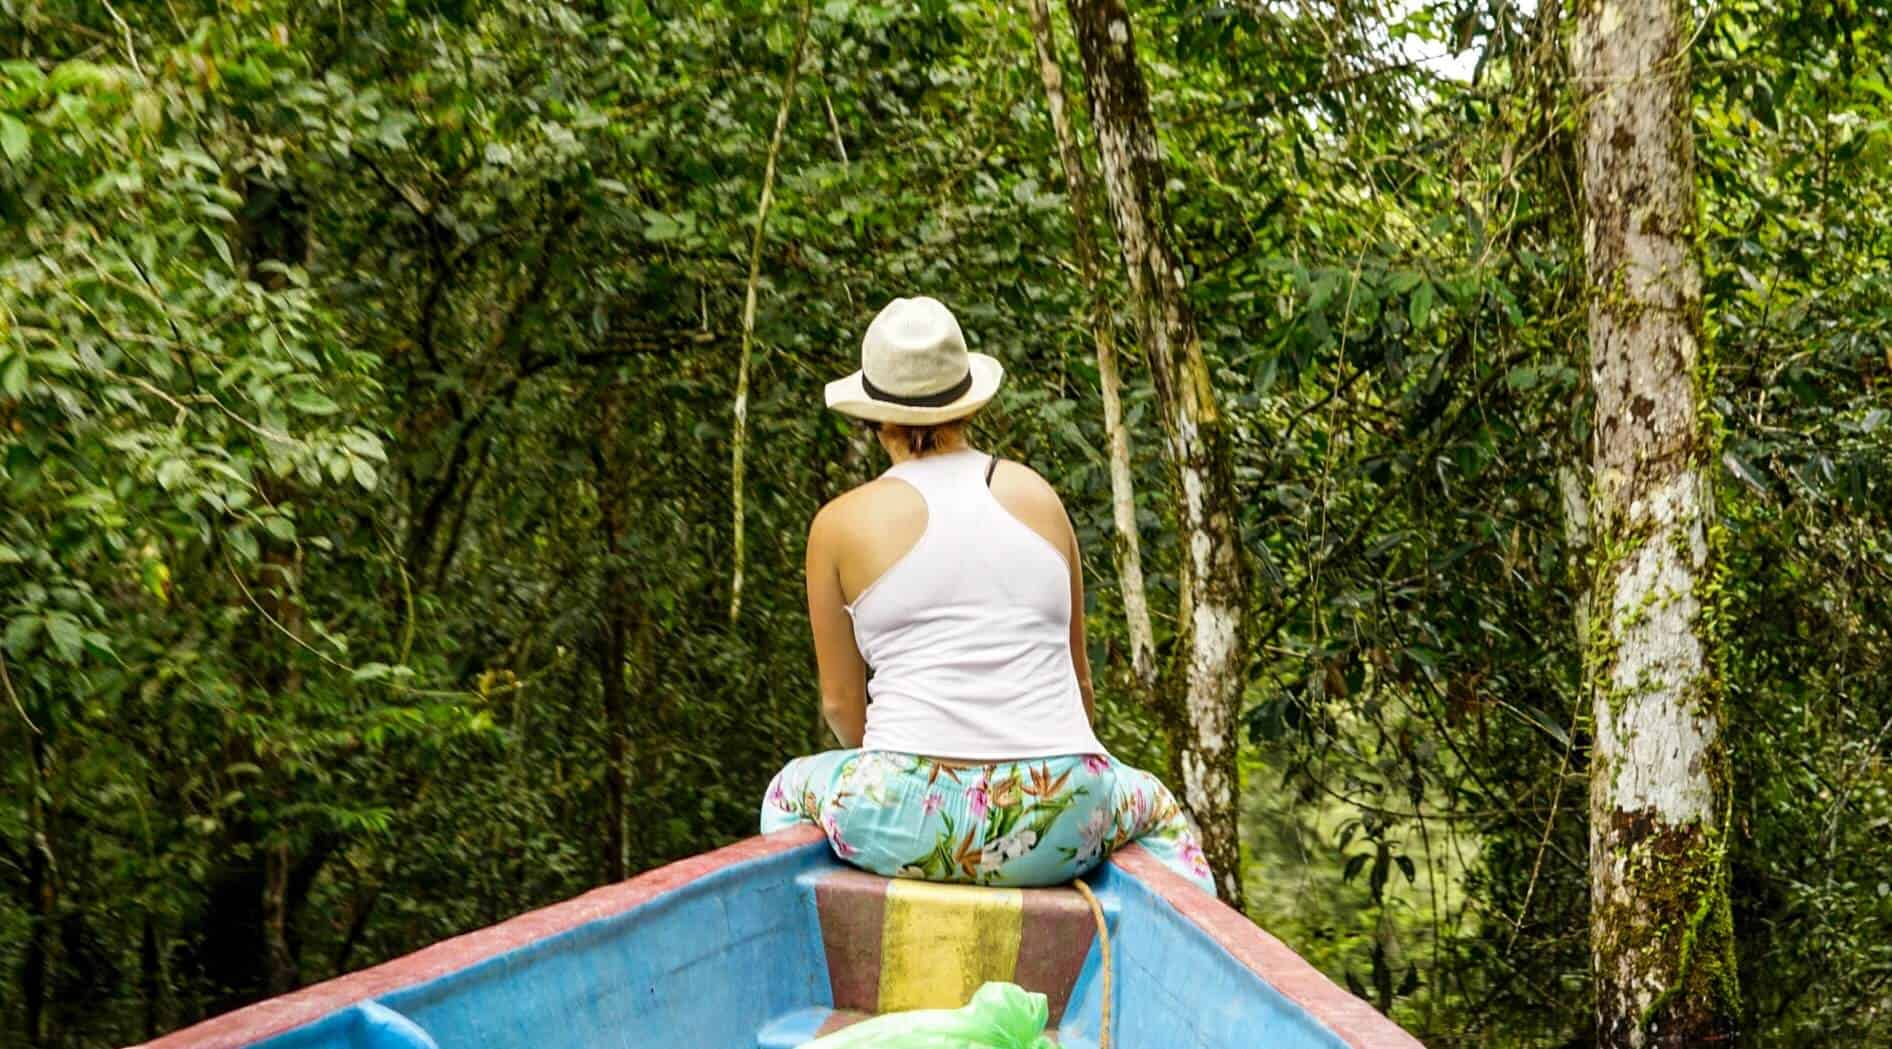 Lora on a boat in the Amazon